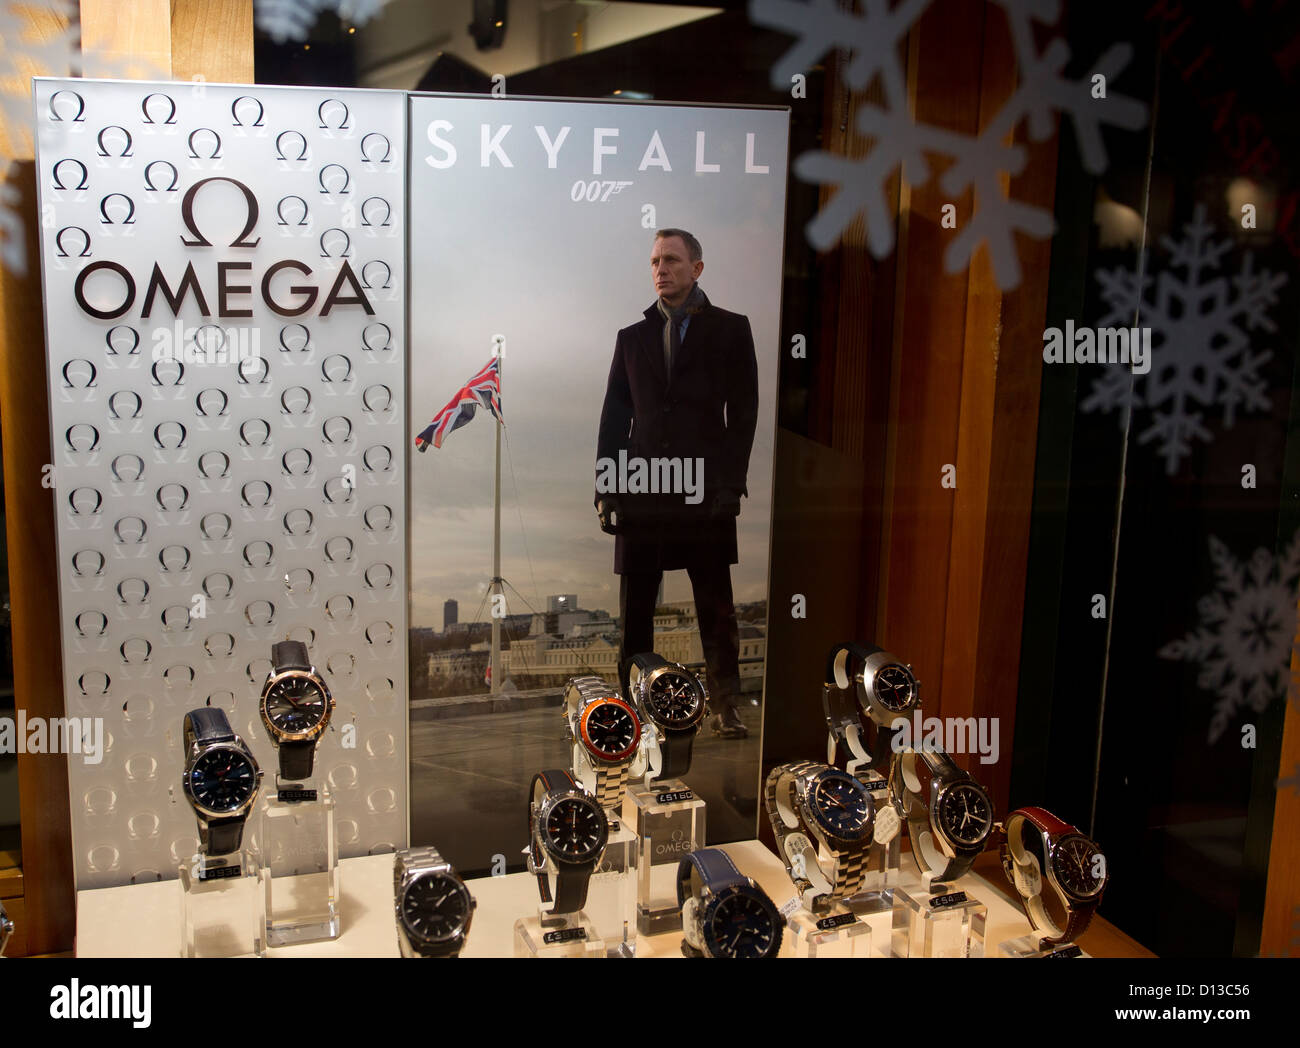 1c2a26d97ce Skyfall 007 James Bond Omega mens watches shop window display showing  Daniel Craig - Stock Image